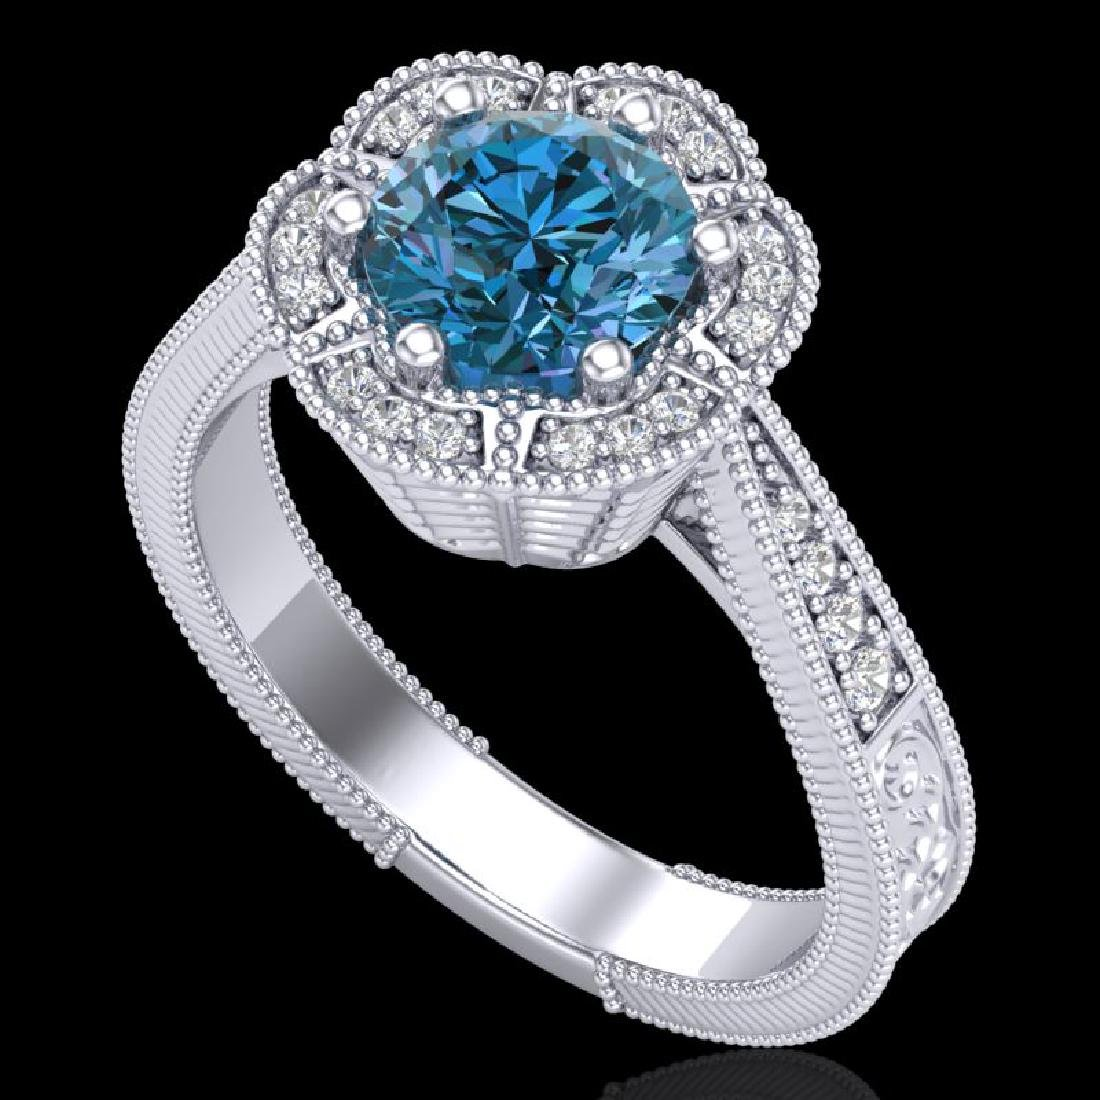 1.33 CTW Fancy Intense Blue Diamond Solitaire Art Deco